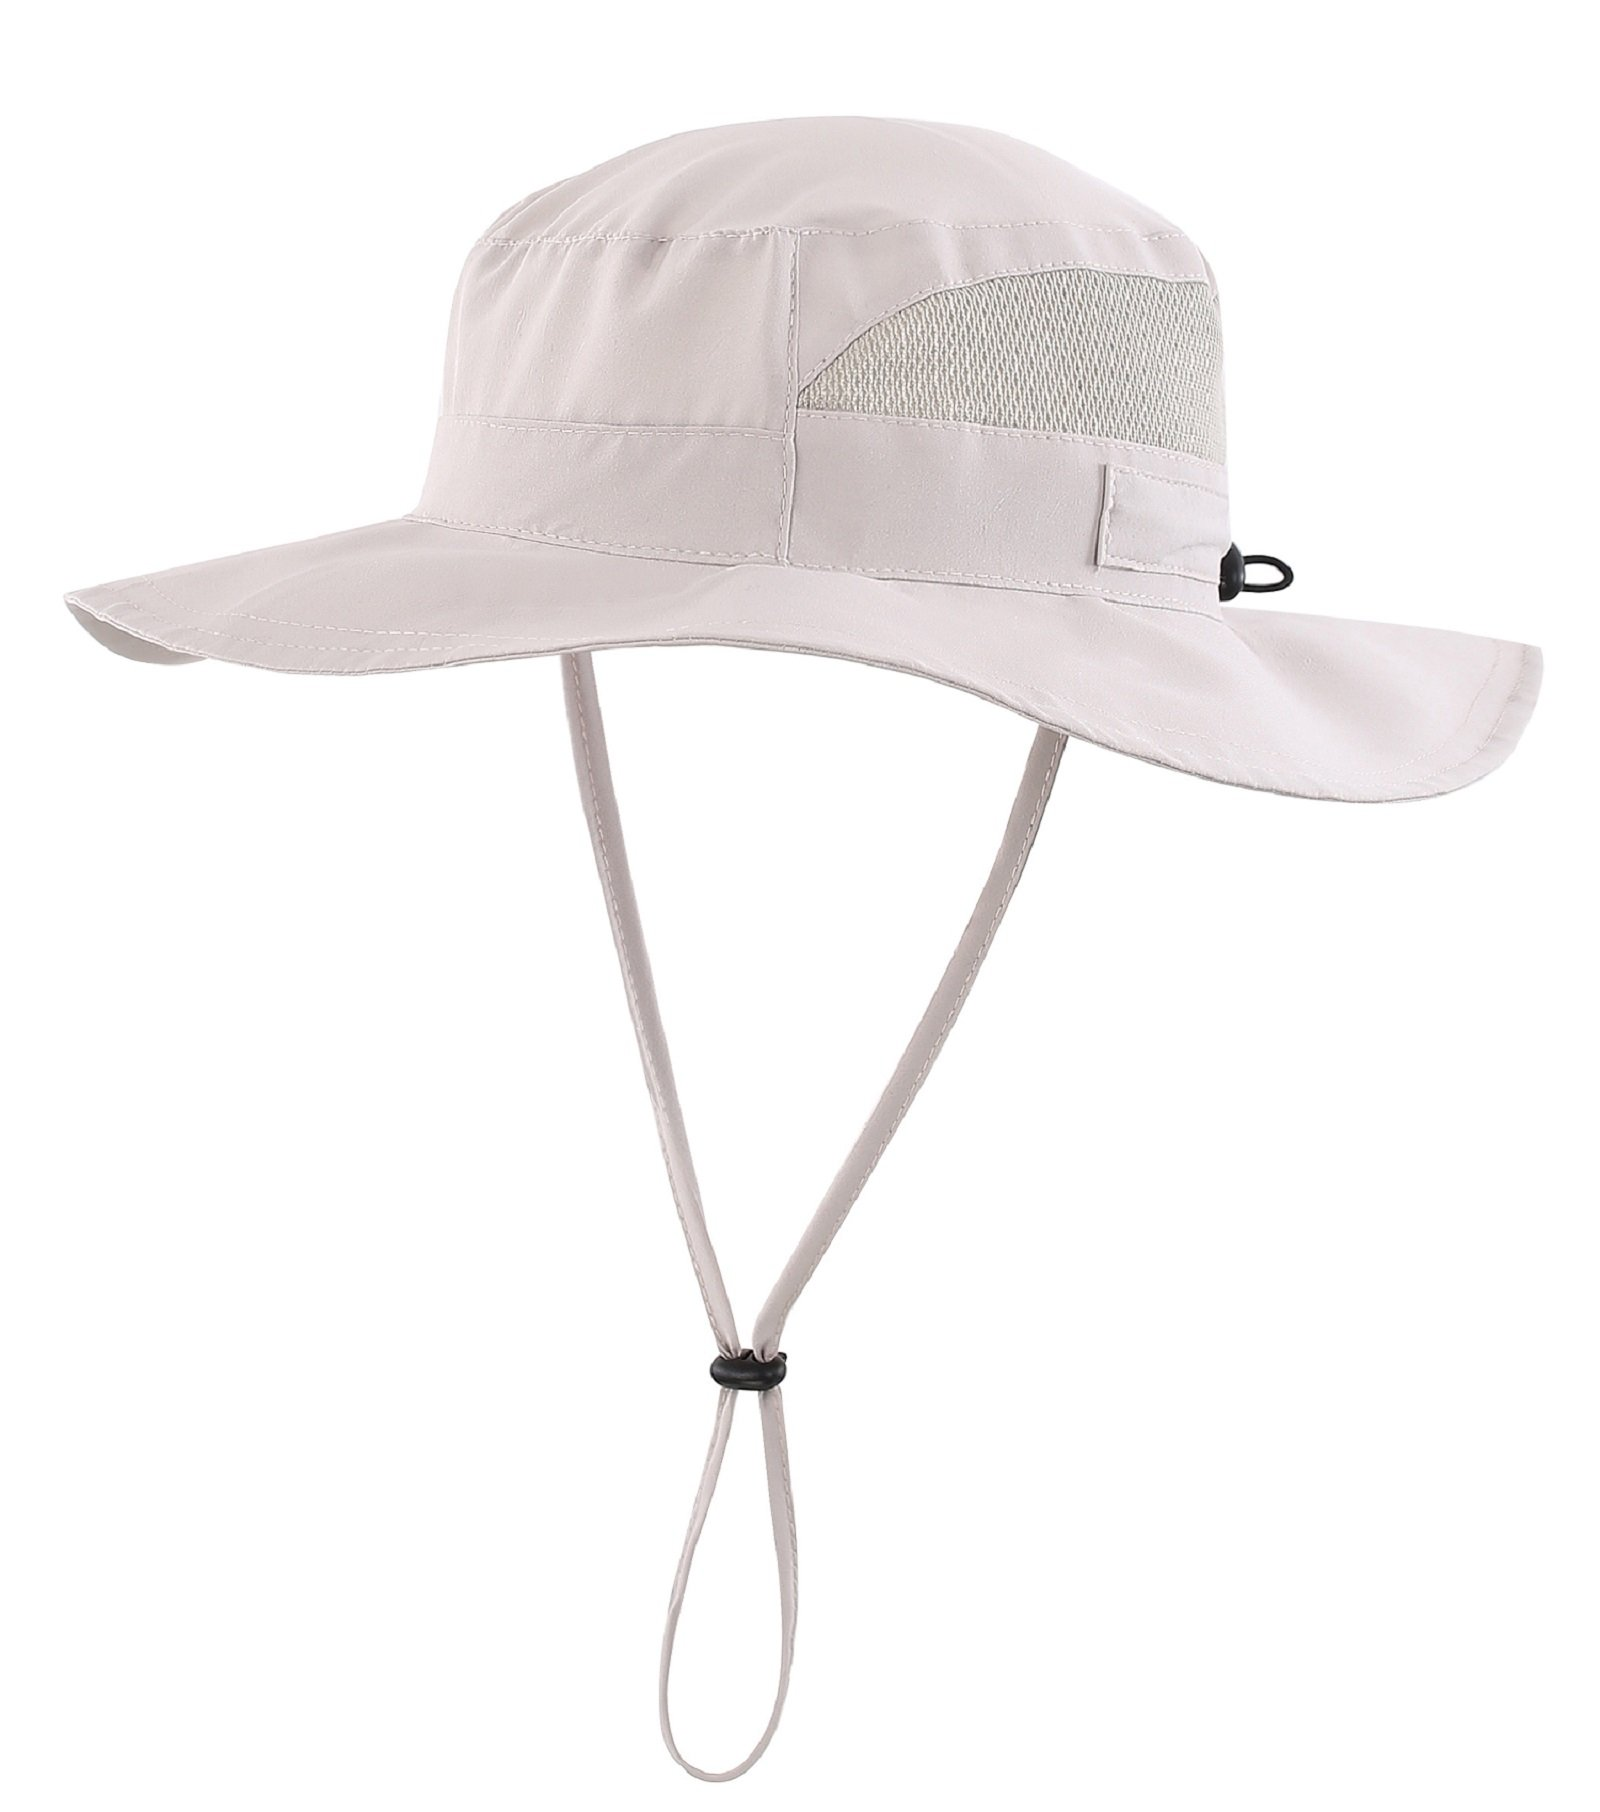 Connectyle Toddler Kids UPF 50+ Mesh Safari Sun Hat UV Sun Protection Hat Summer Daily Bucket Hat